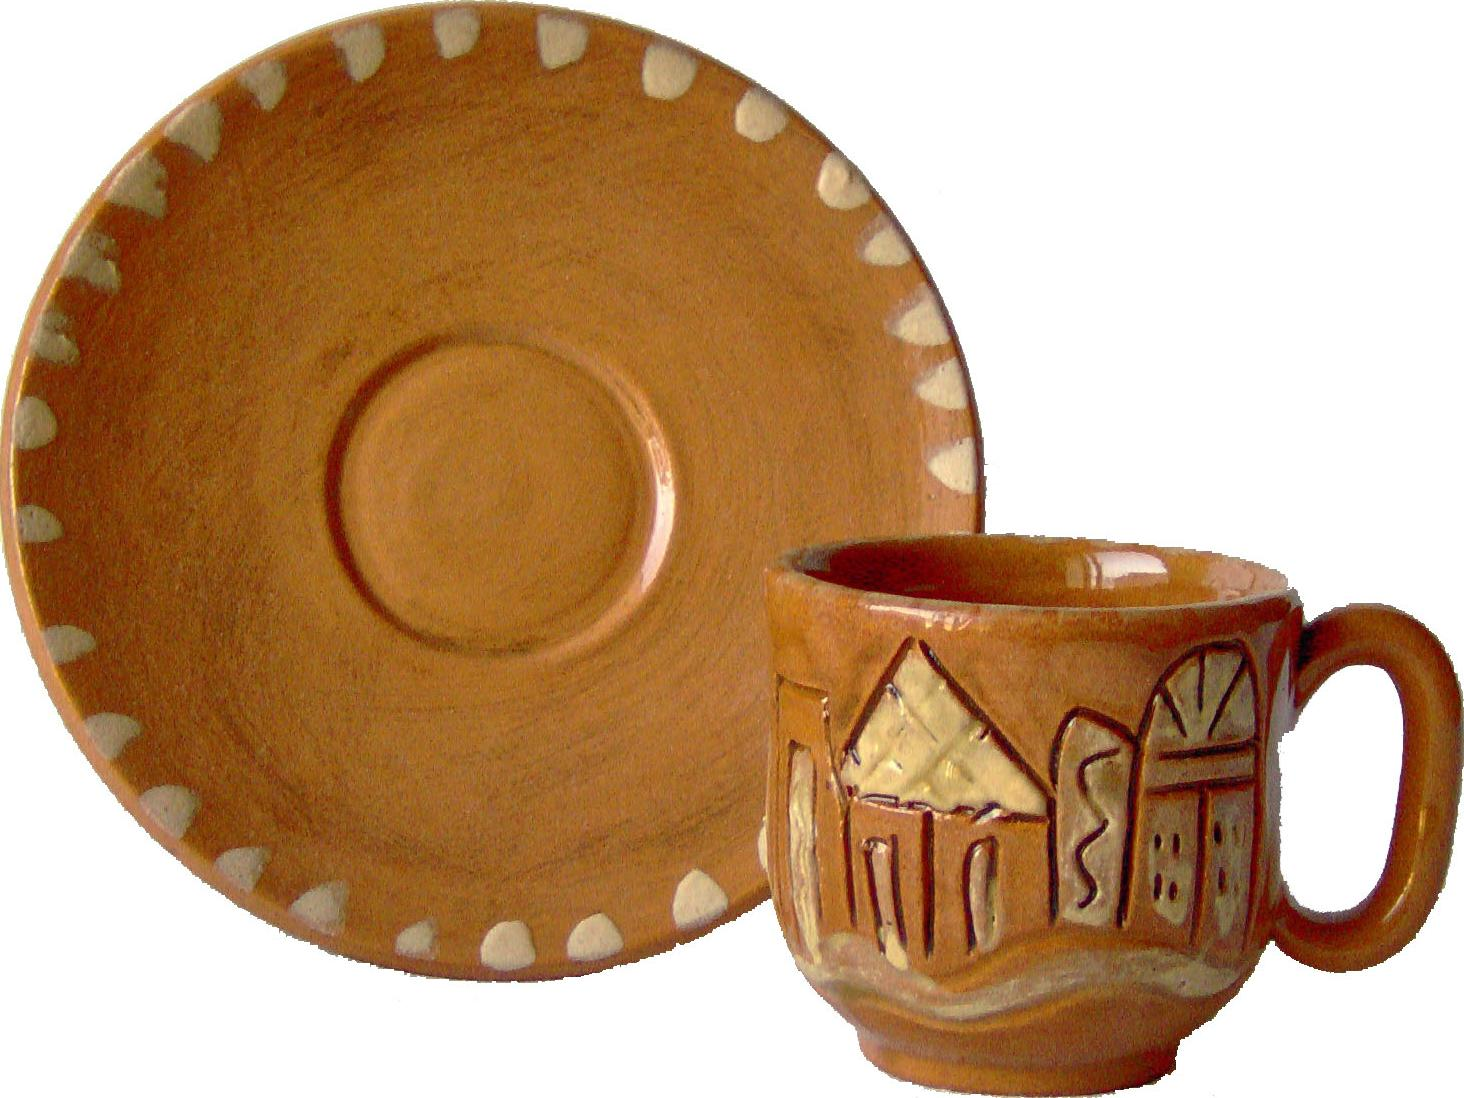 Nabatean of Petra art clay cup pots and pottery crafts